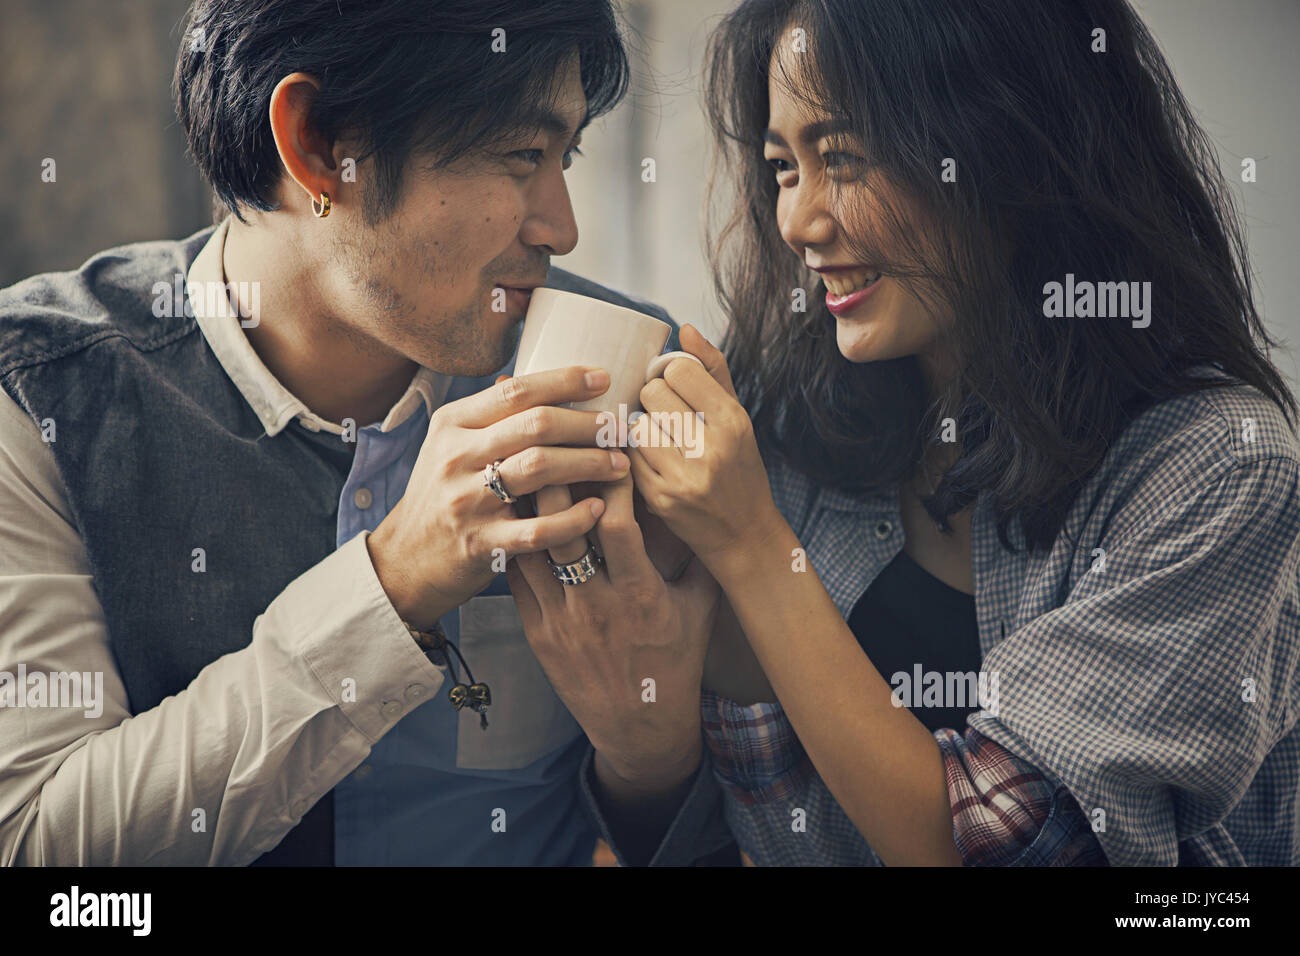 couples of asian younger man and woman happiness emotion with hot coffee cup in hand - Stock Image